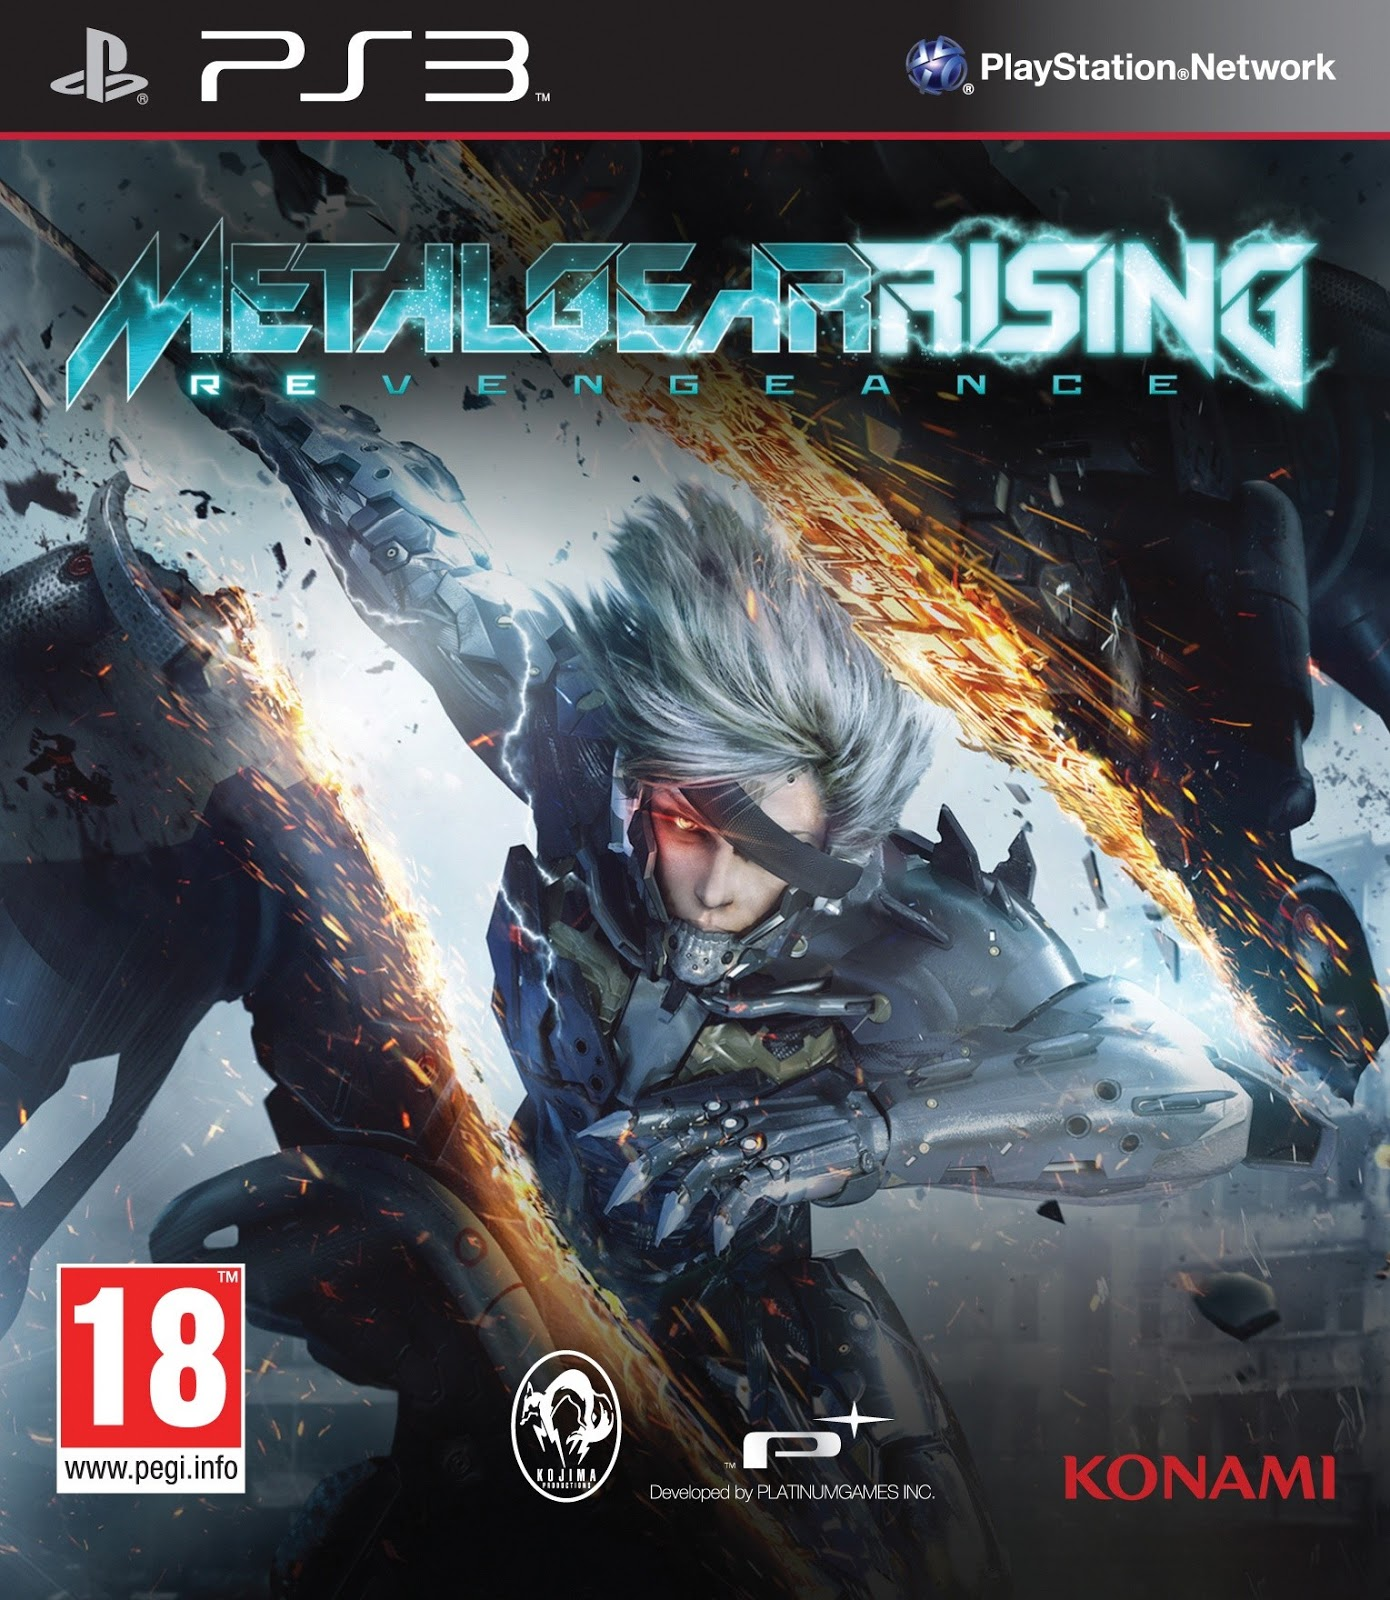 17 ago 2013   Categorias  A  231   227 o e Aventura   PS3   319 ComentariosMetal Gear Rising Revengeance Cover Ps3